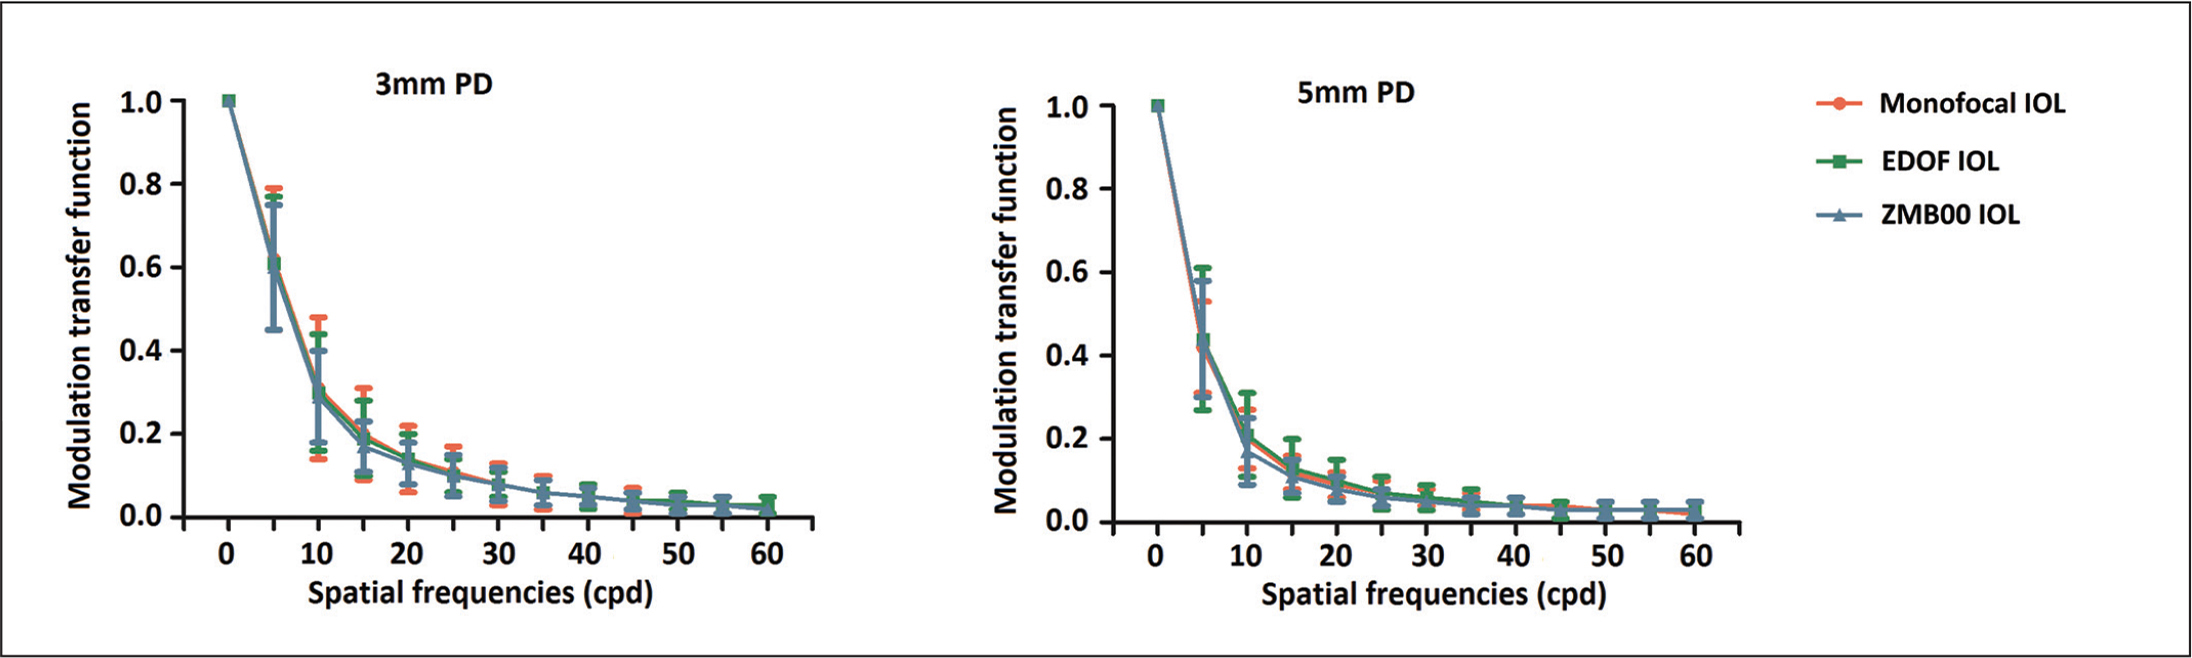 Comparison of the mean modulation transfer function values among the three intraocular lens (IOL) groups at different spatial frequencies under different pupil diameters (PDs). Error bars represent standard errors of the mean. No significant differences were observed among the three IOL groups for any of the spatial frequencies. The ZMB00 IOL is manufactured by Abbott Medical Optics, Santa Ana, CA. EDOF = extended depth of focus; cpd = cycles per degree